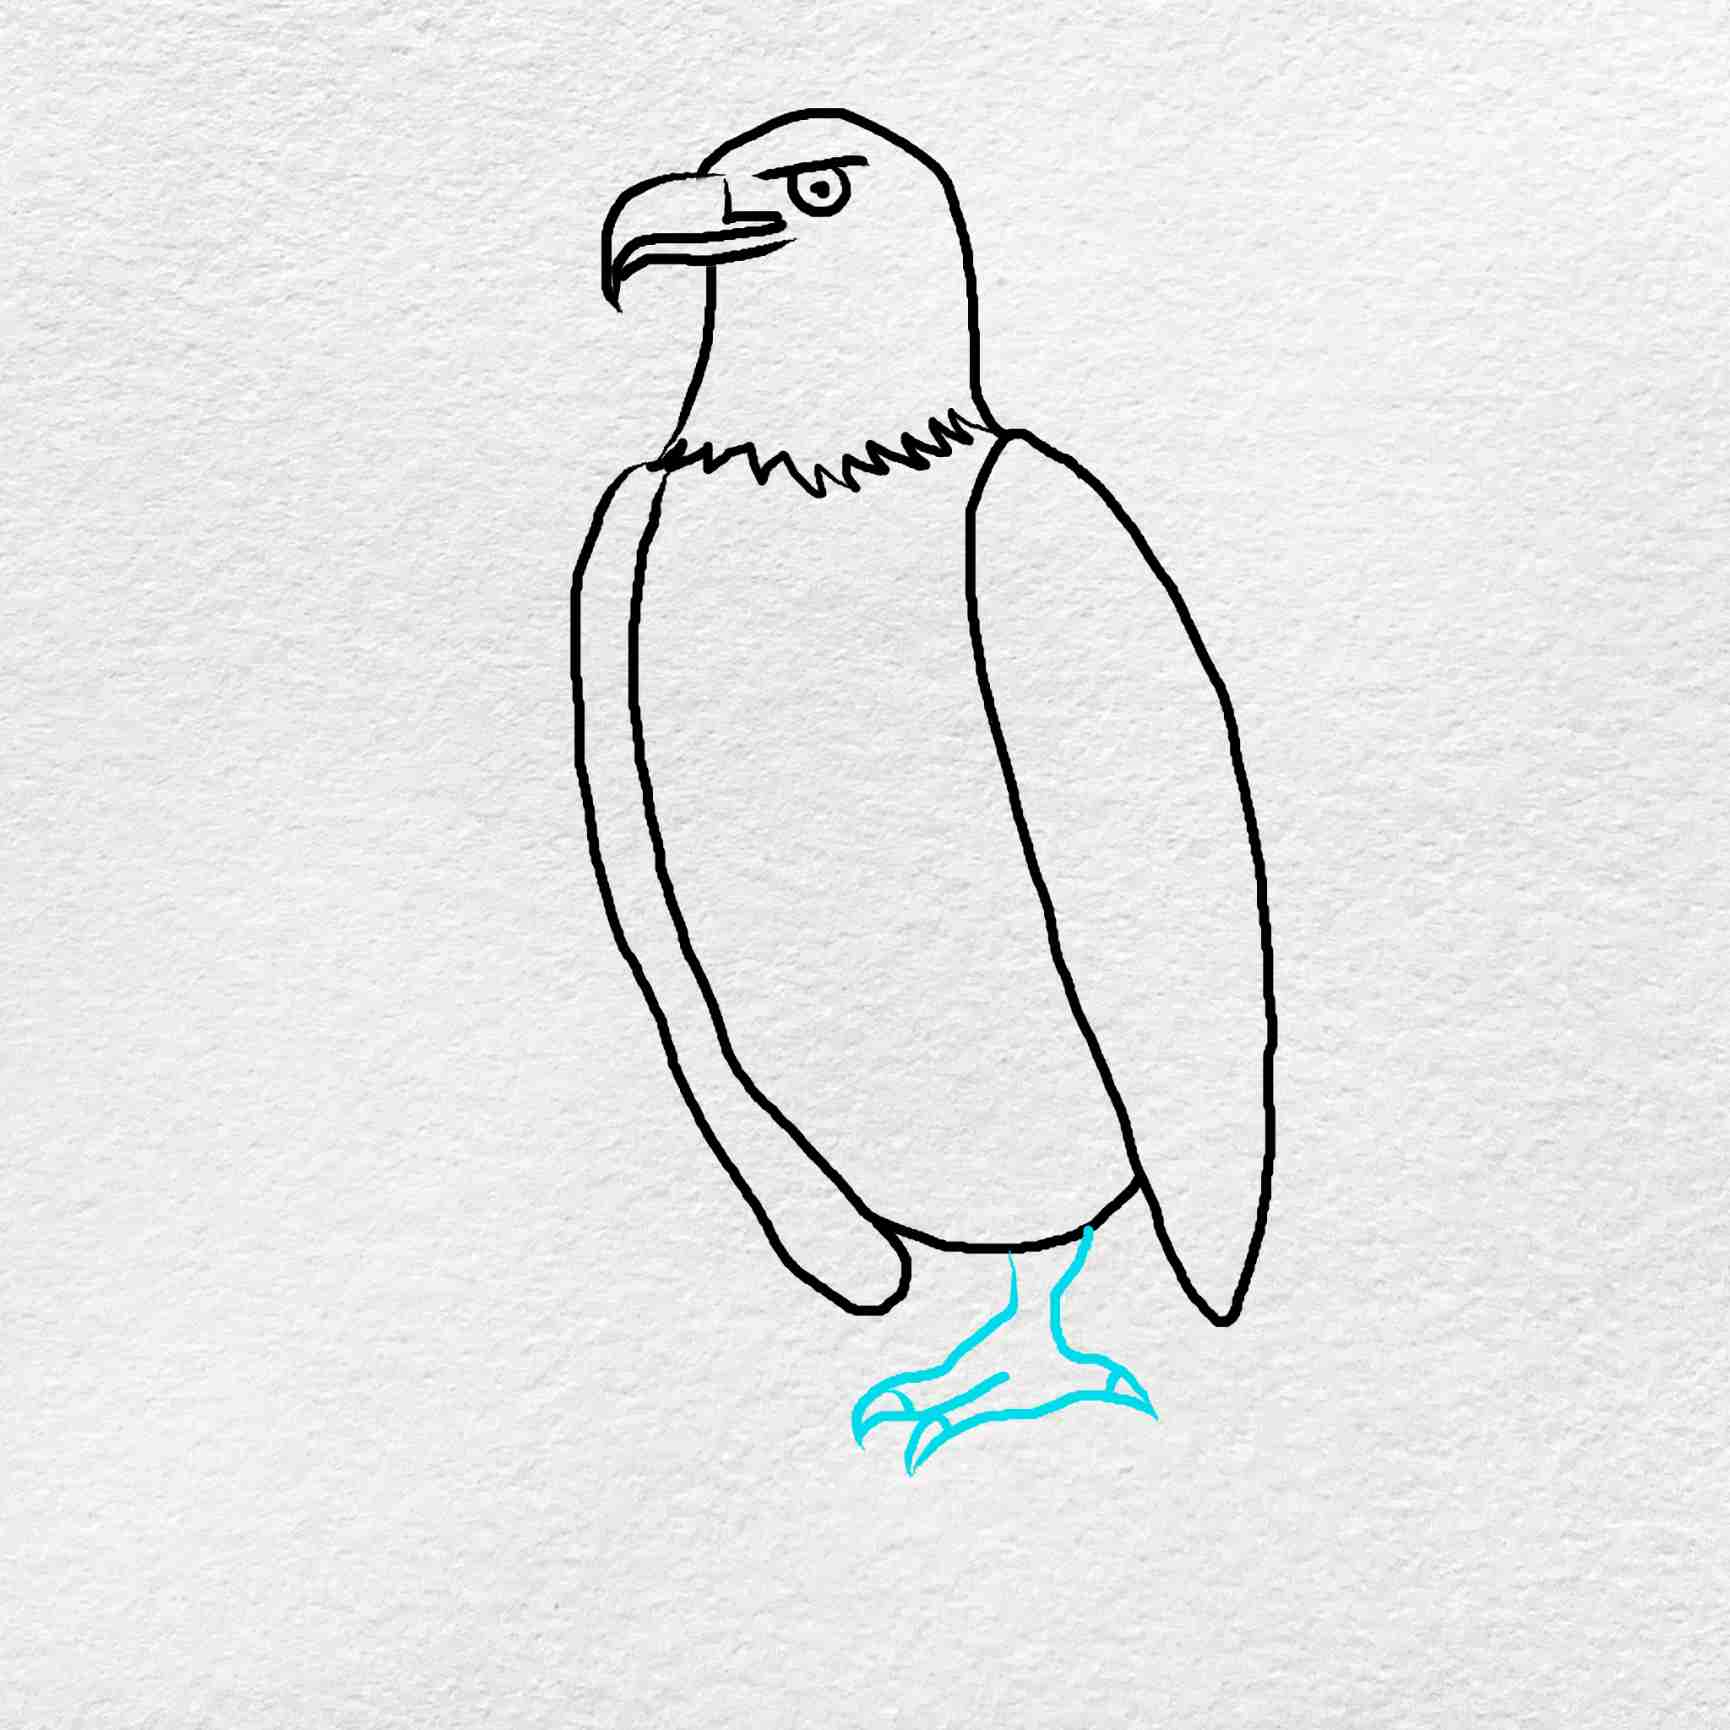 How To Draw An Eagle Easy: Step 6